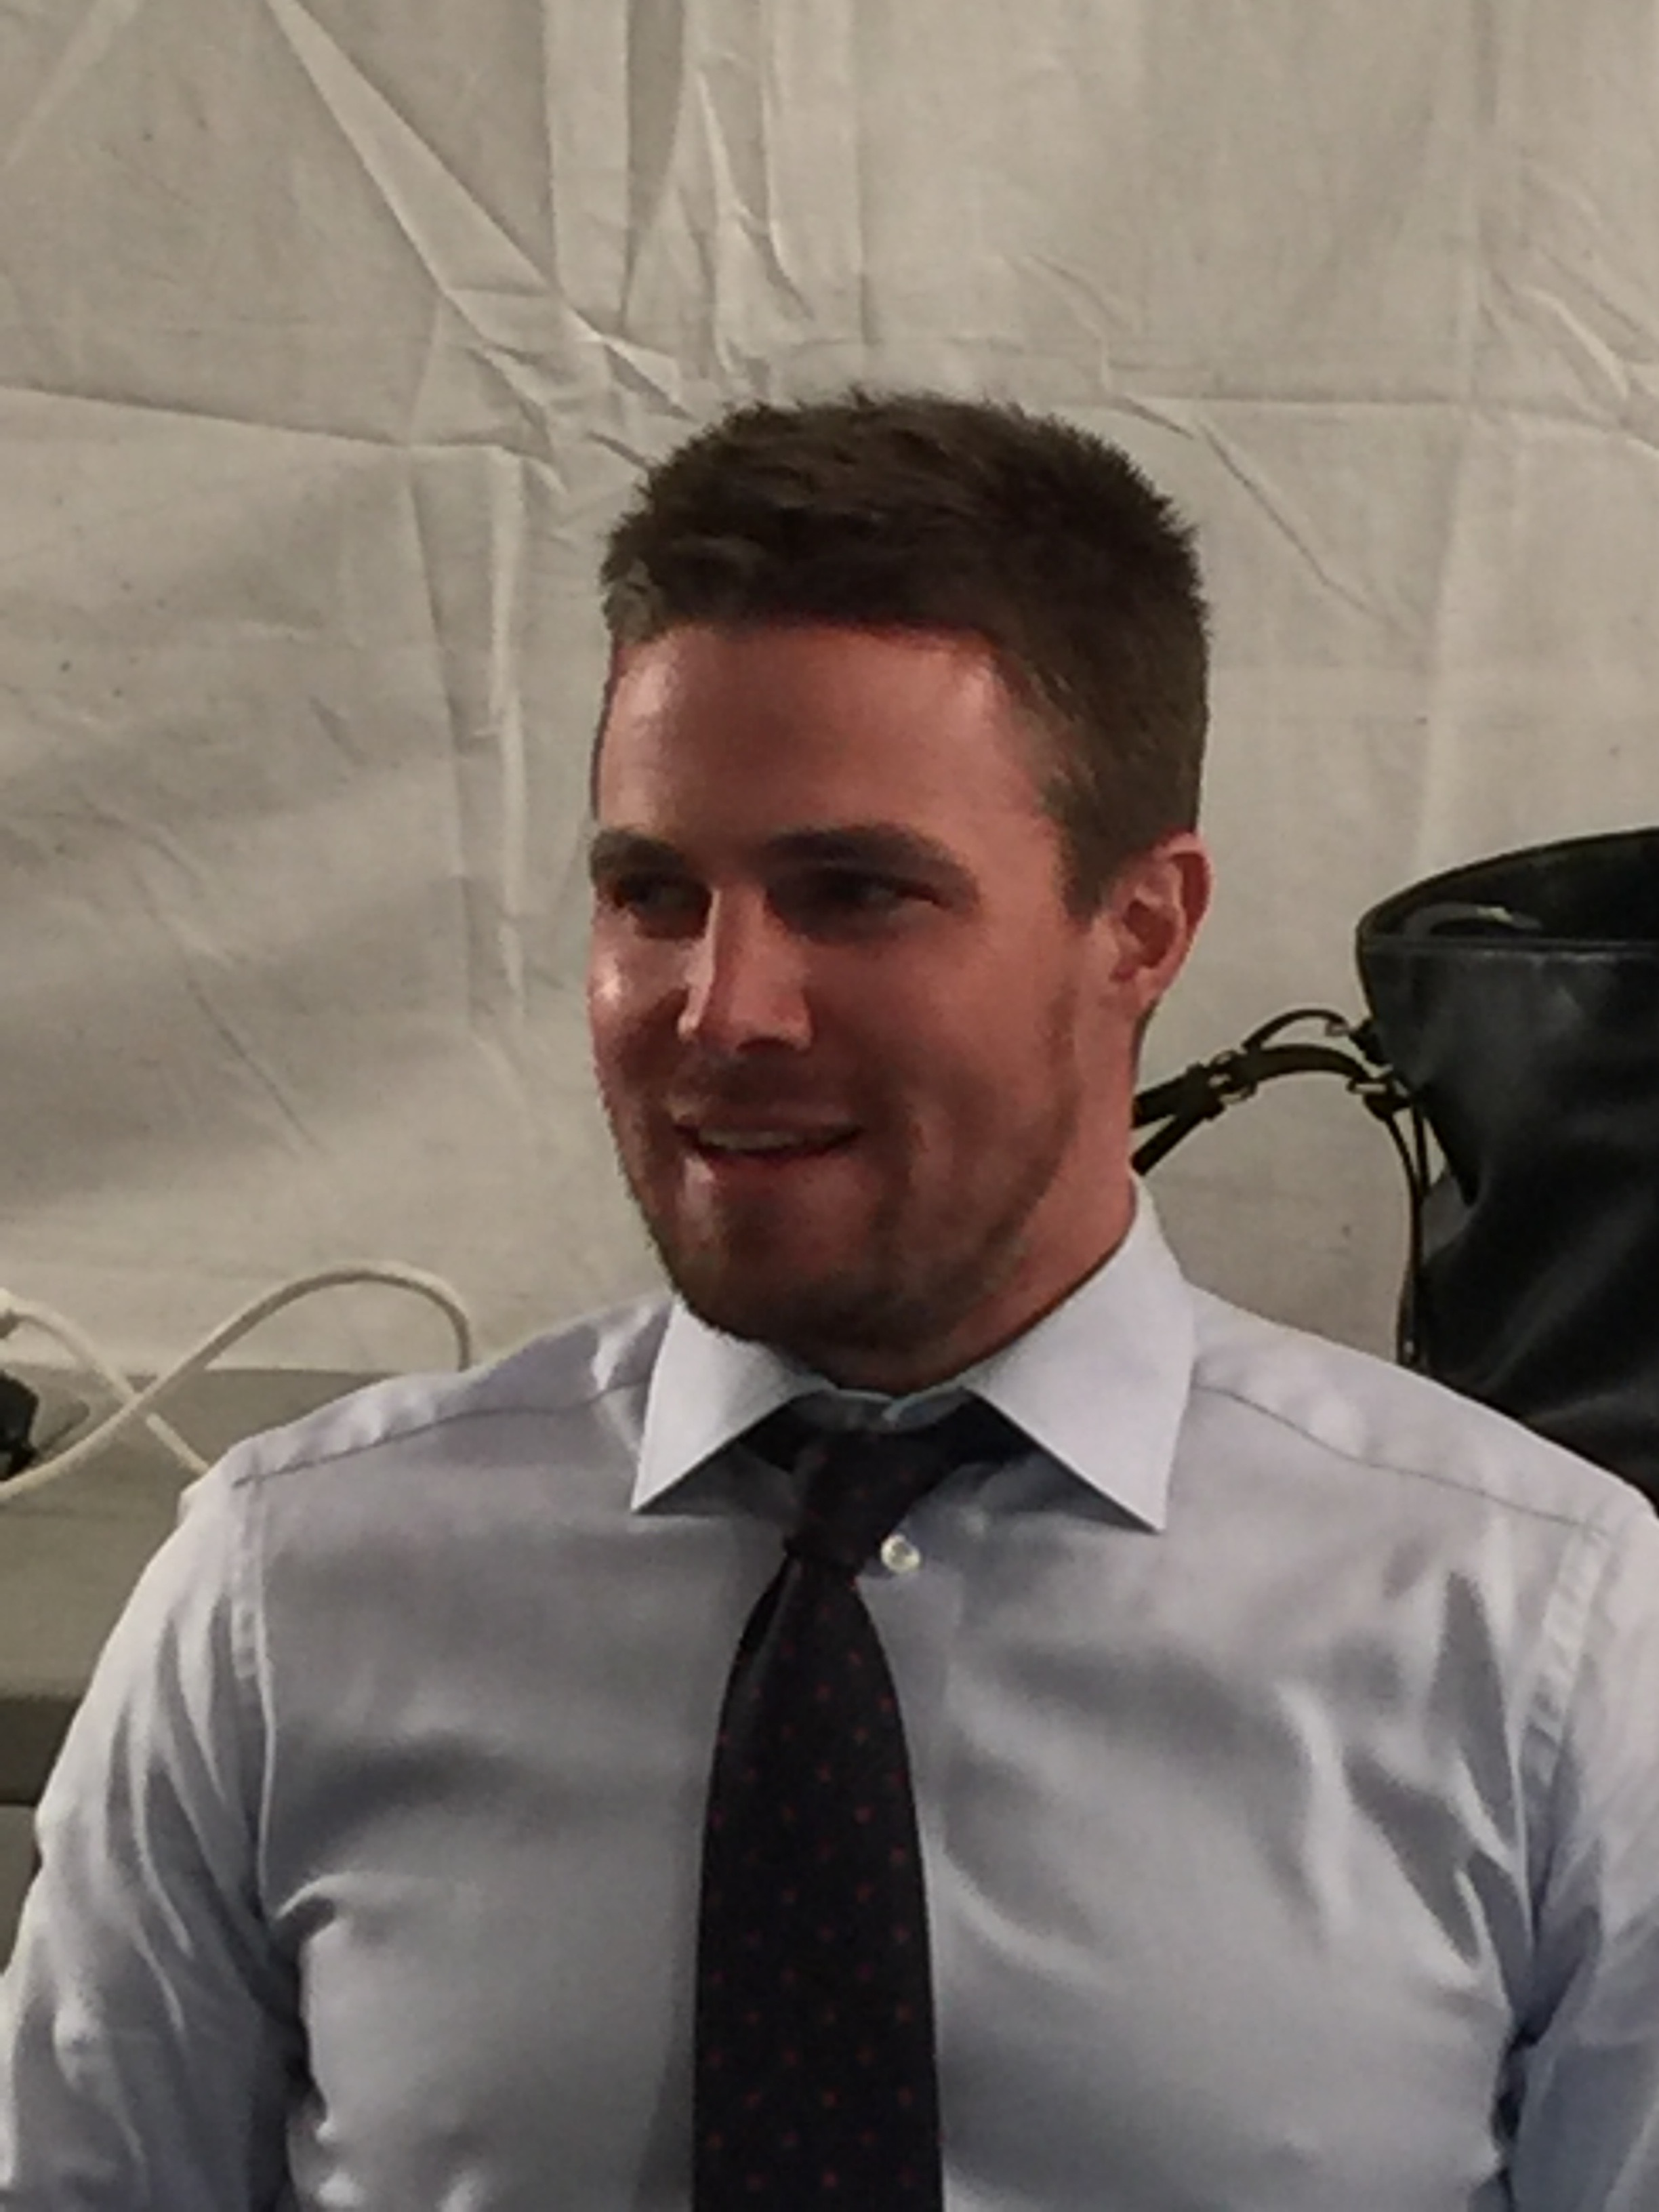 Arrow Season 4: Stephen Amell Previews What's Coming Soon